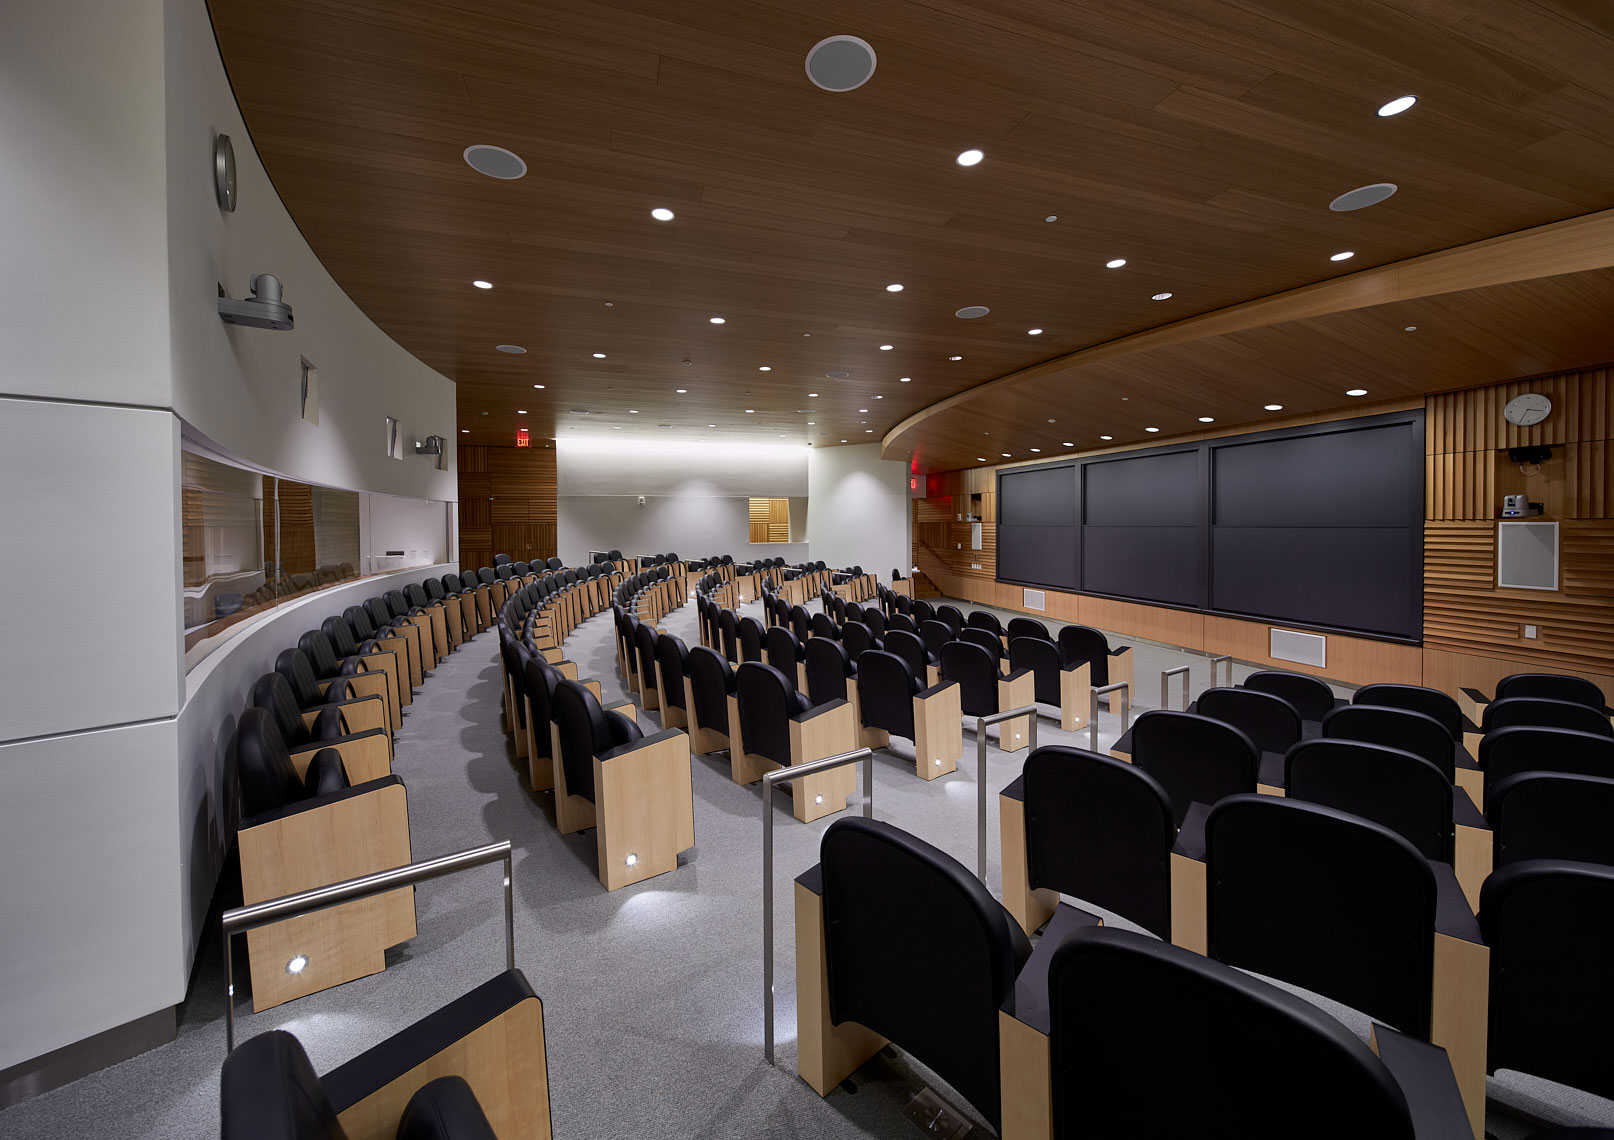 Large classroom - Princeton Neuroscience Institute.